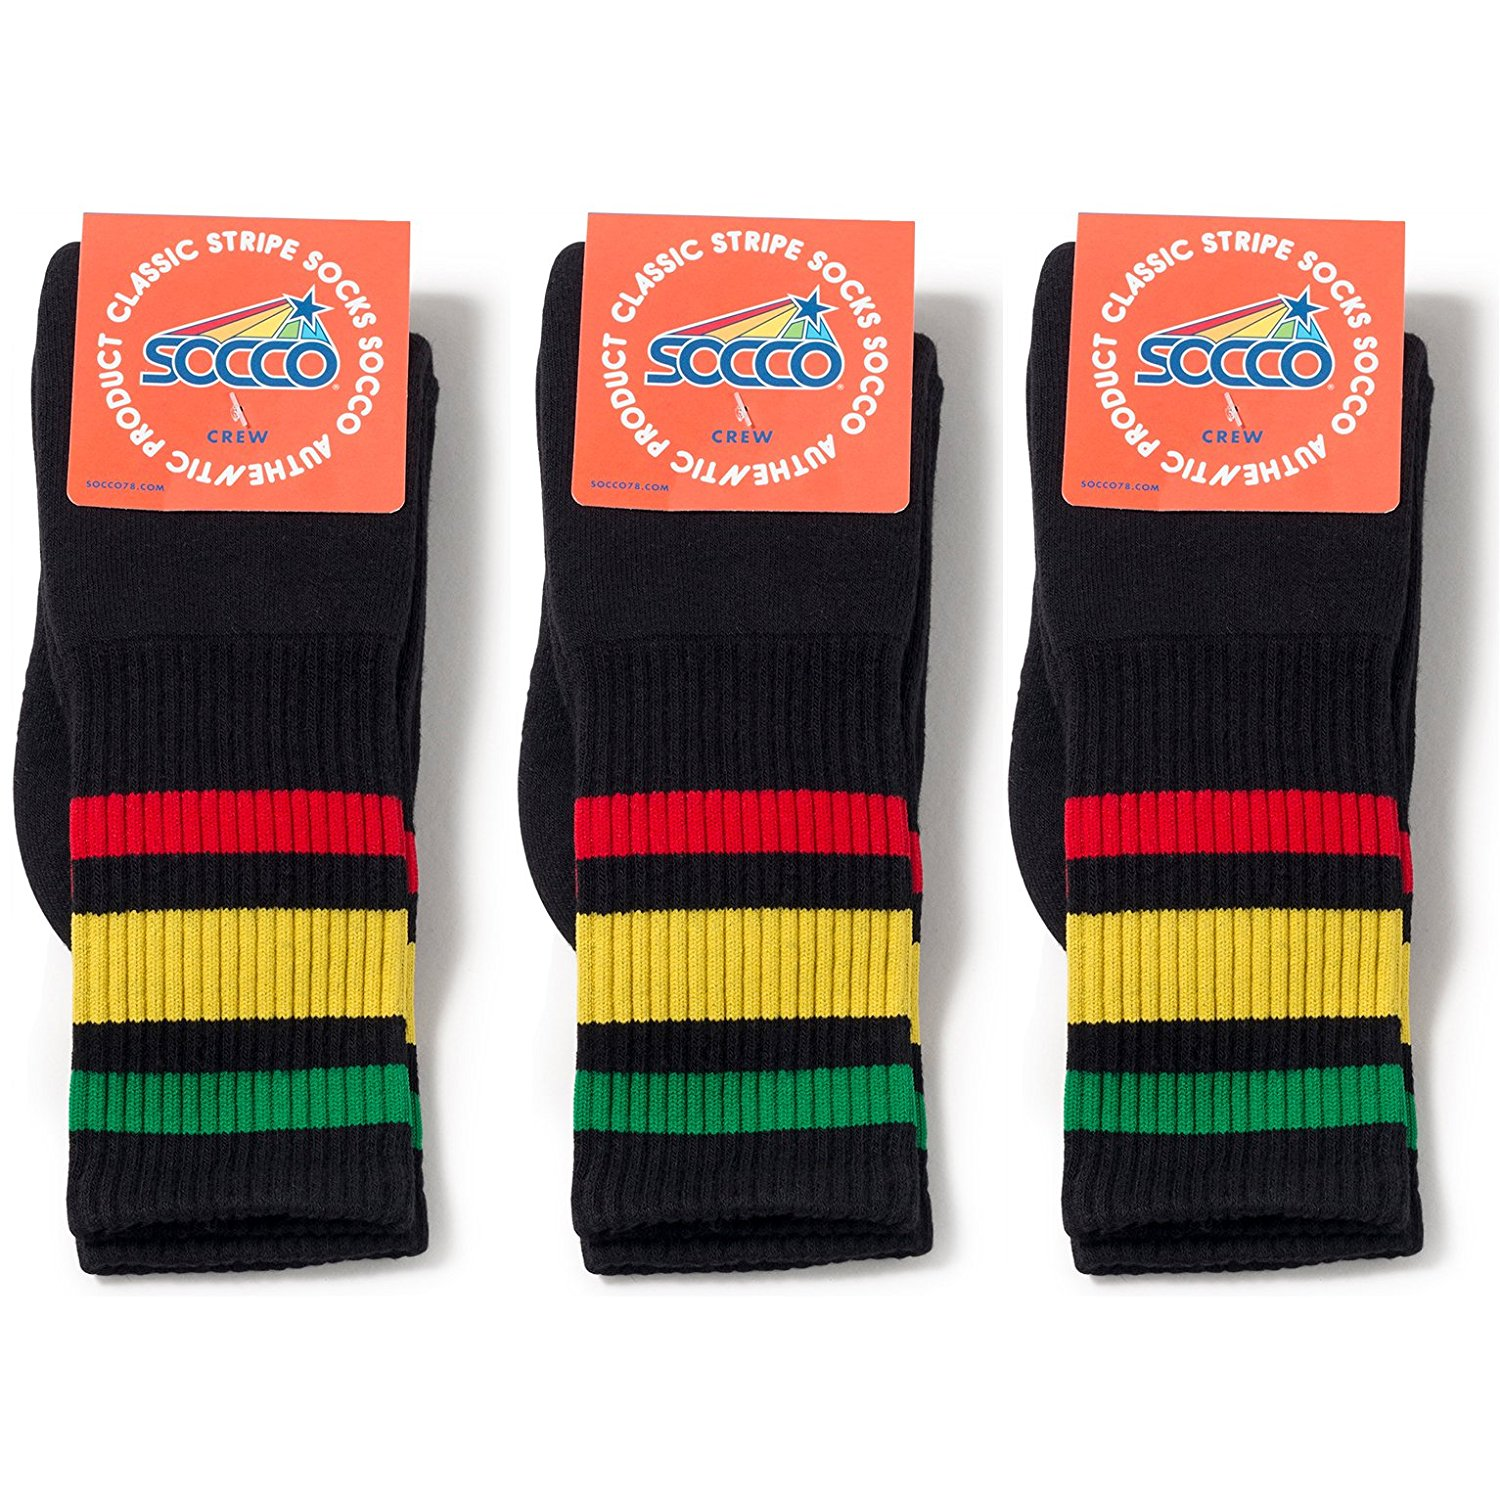 Socco Socks Unisex Black Triple Striped Rasta Green/Yellow / Red Crew Tube Socks Bundle of 3 Pairs - Large/X-Large (10-13)